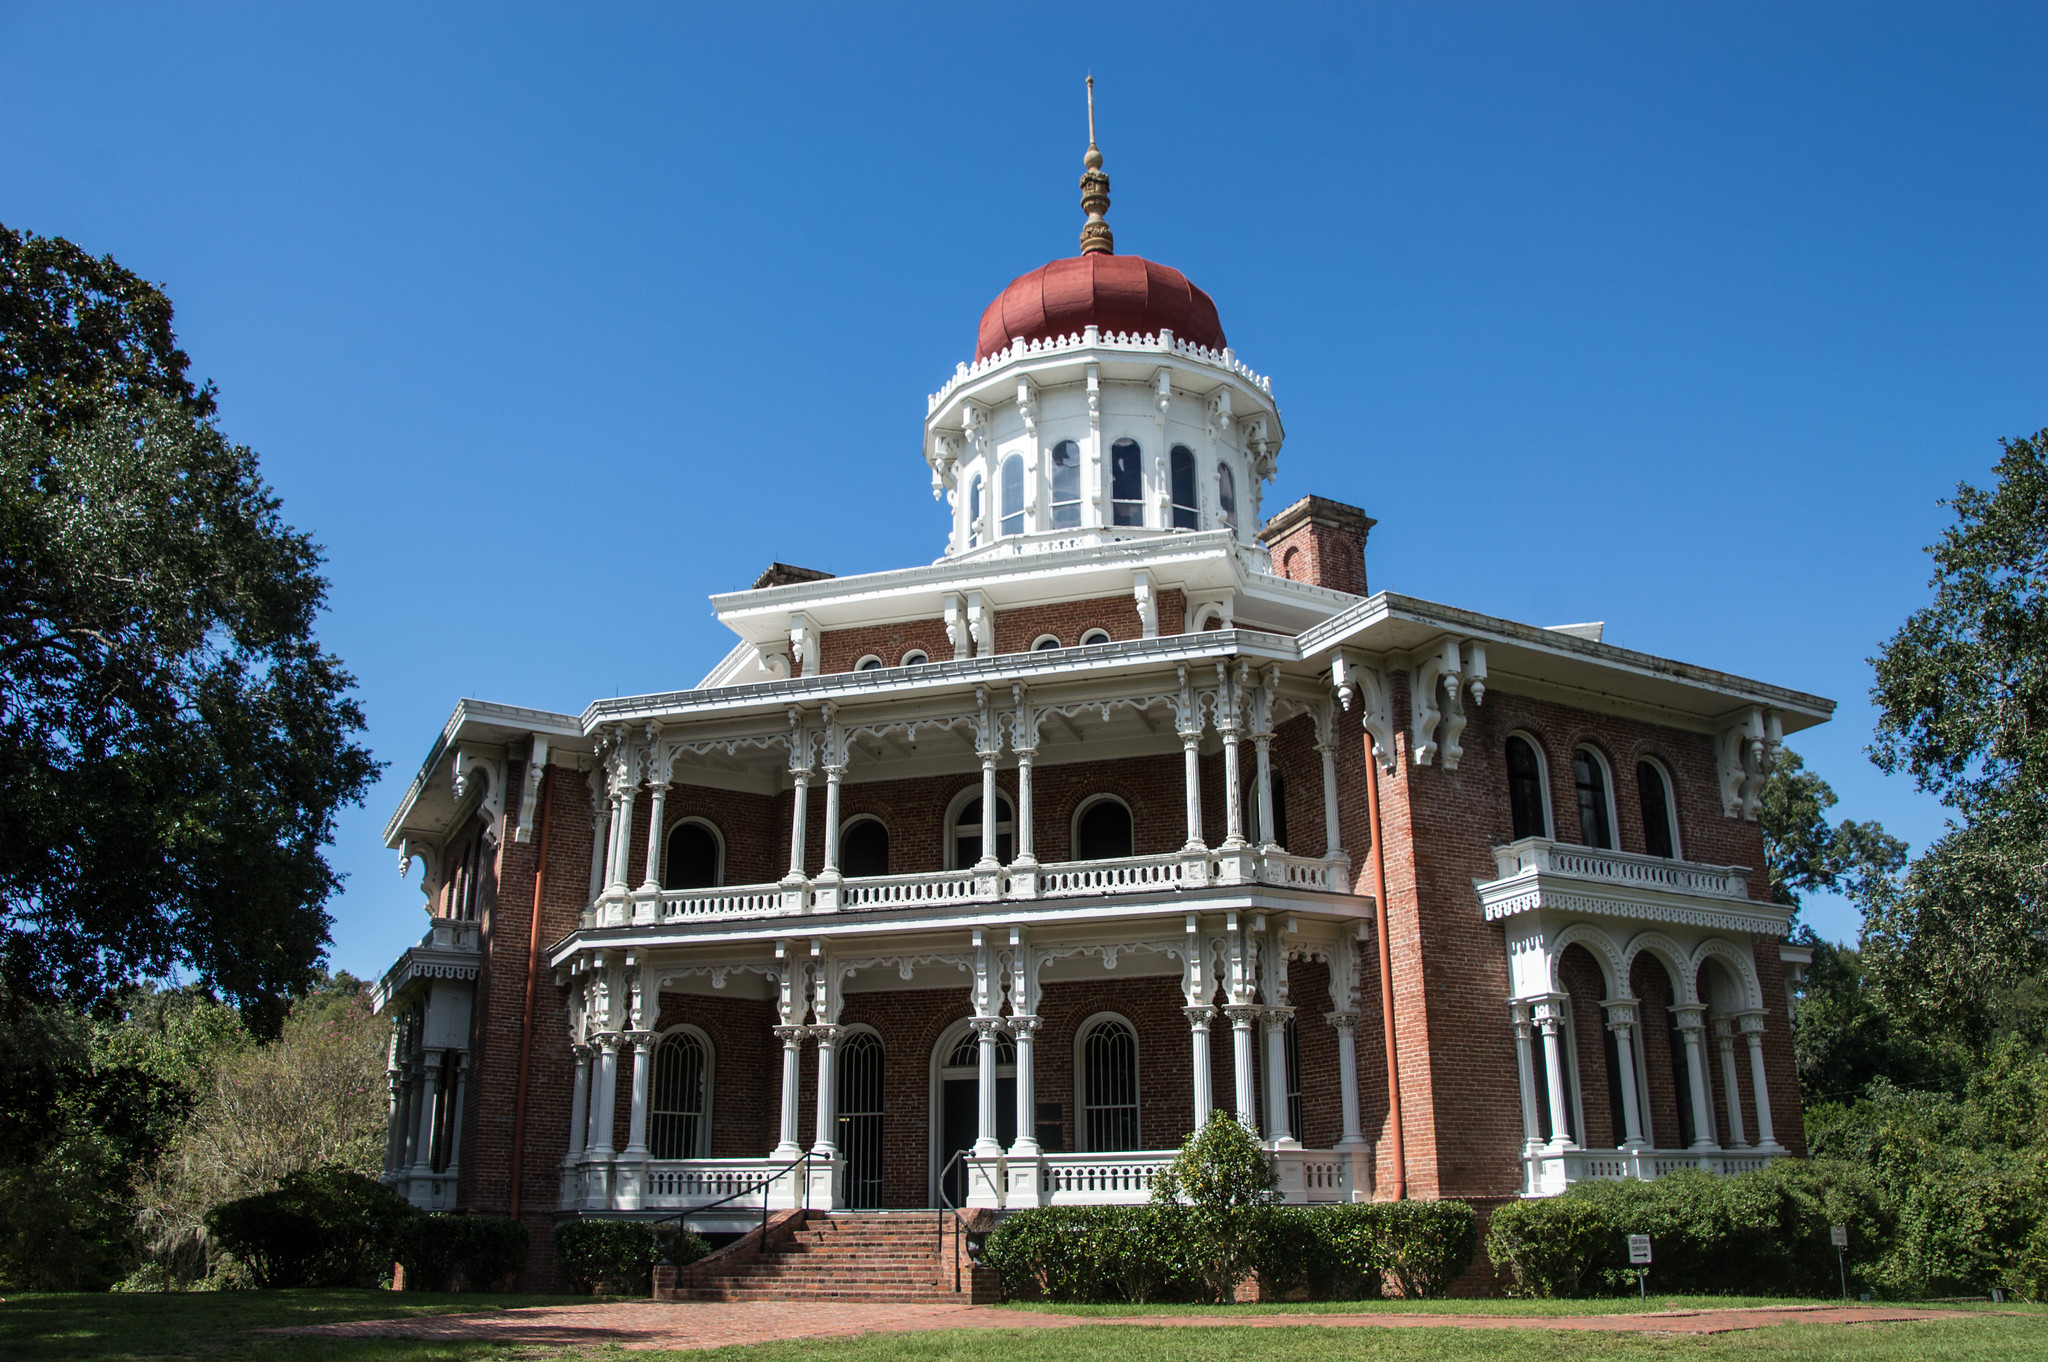 15 Things to do in Natchez, Mississippi